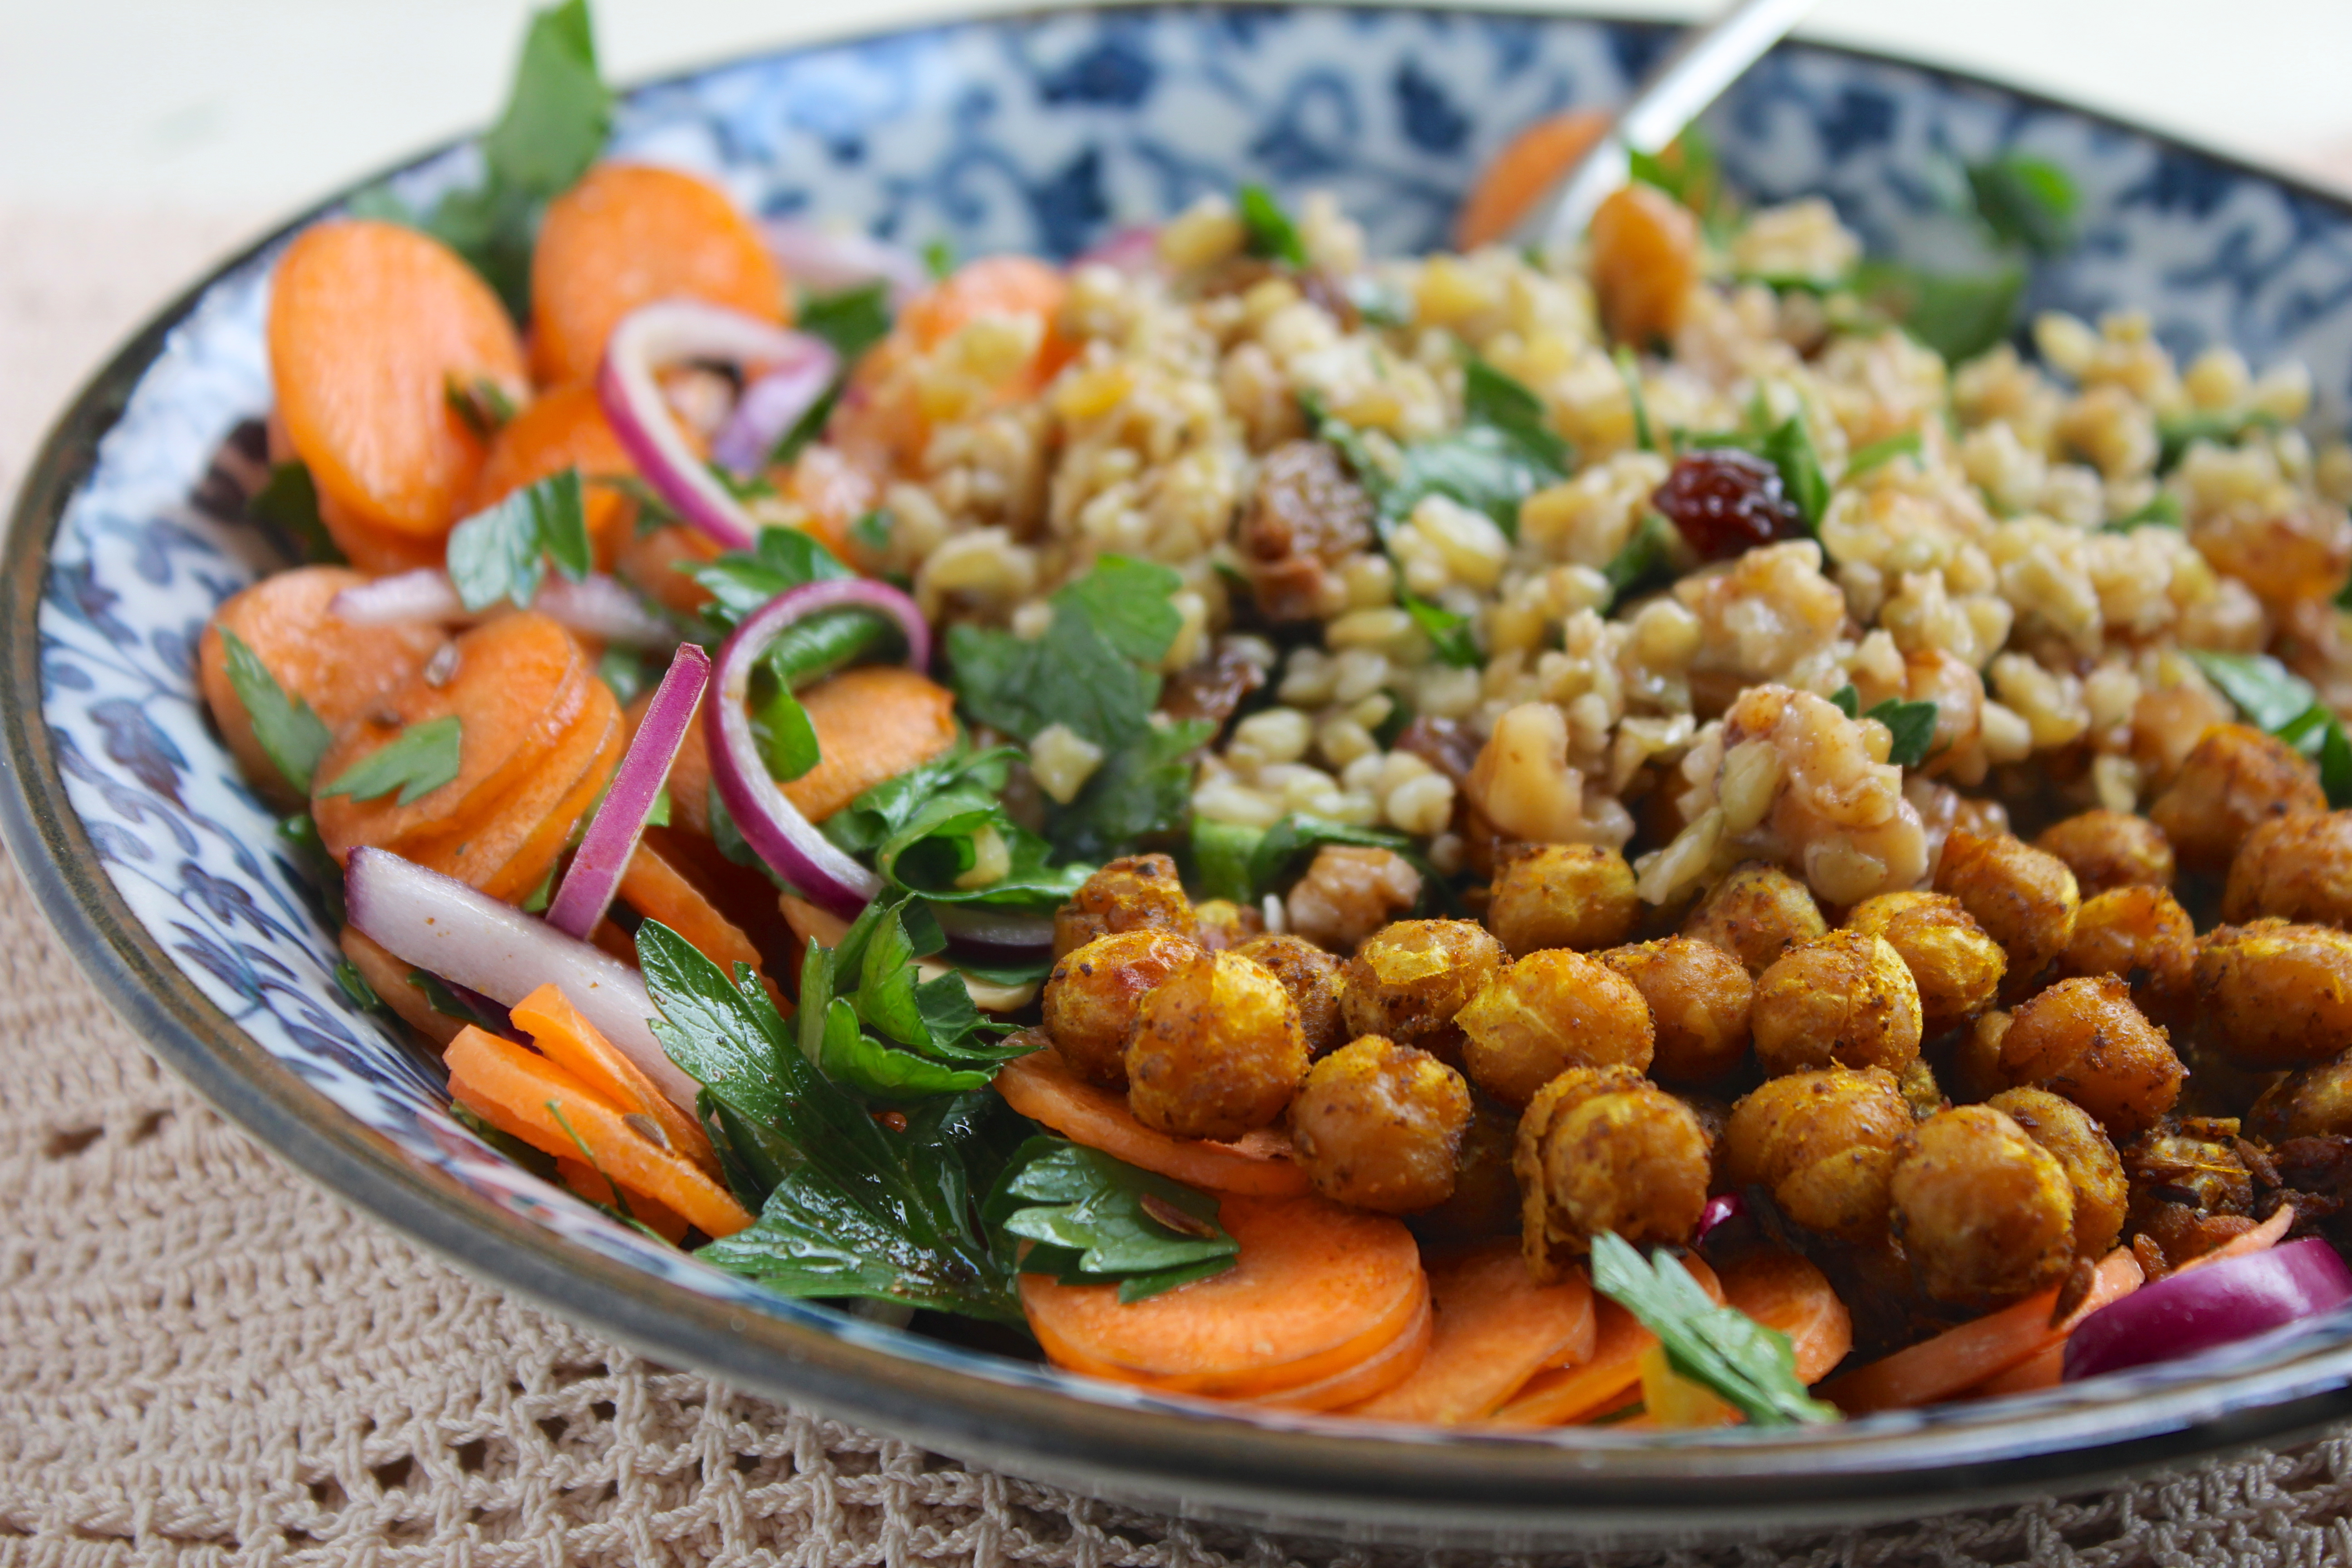 Spice-Roasted Chickpeas, Herbed Freekeh & Moroccan Carrot Salad